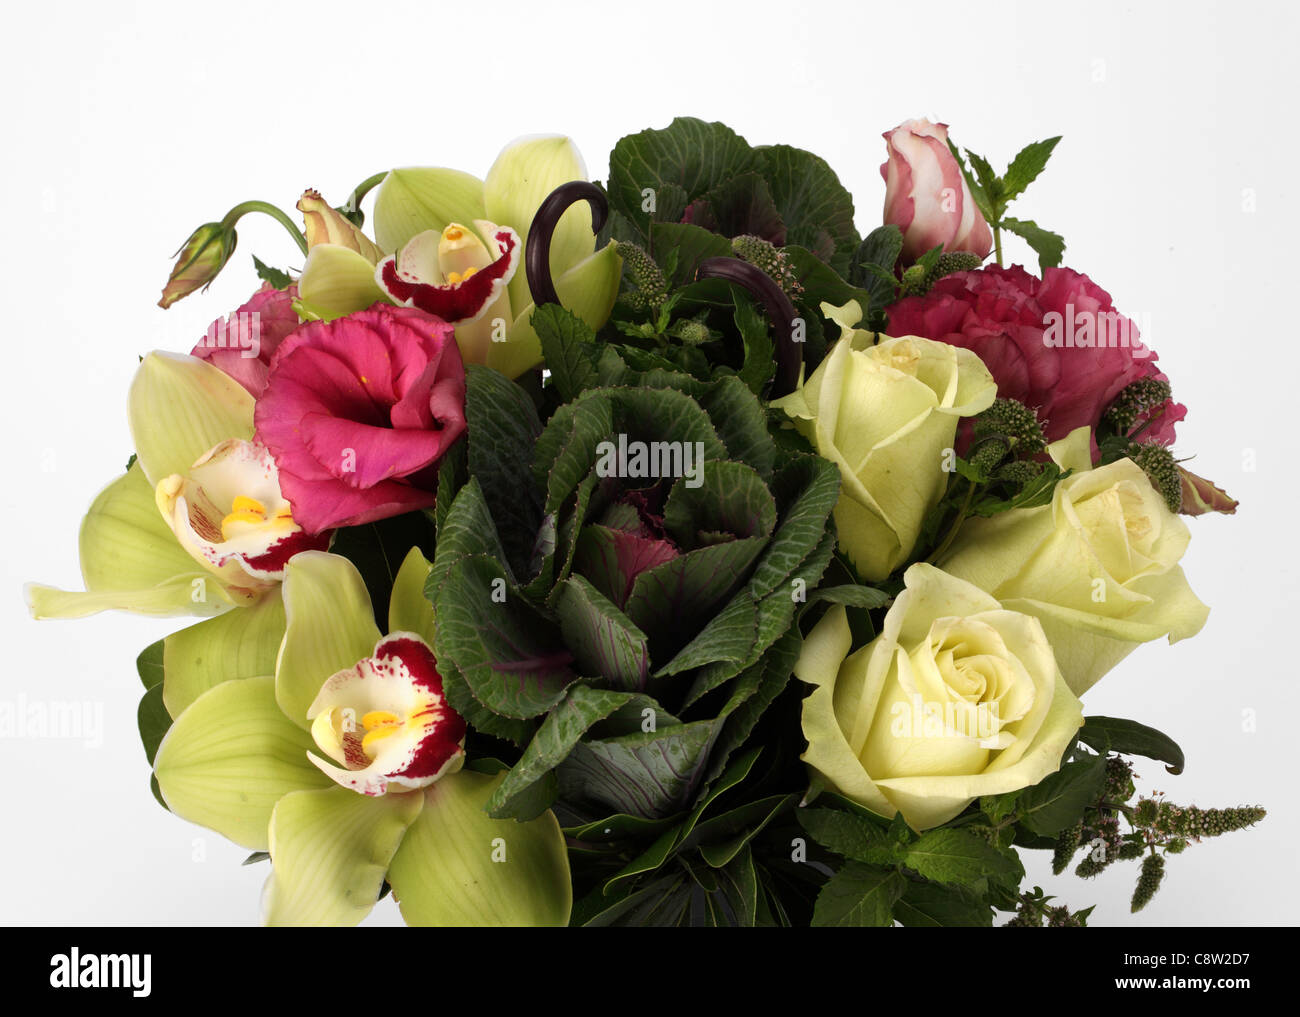 A close up of a colorful bouquet of flowers ornamental cabbage a close up of a colorful bouquet of flowers ornamental cabbage white roses cymbidium orchids pink peonies izmirmasajfo